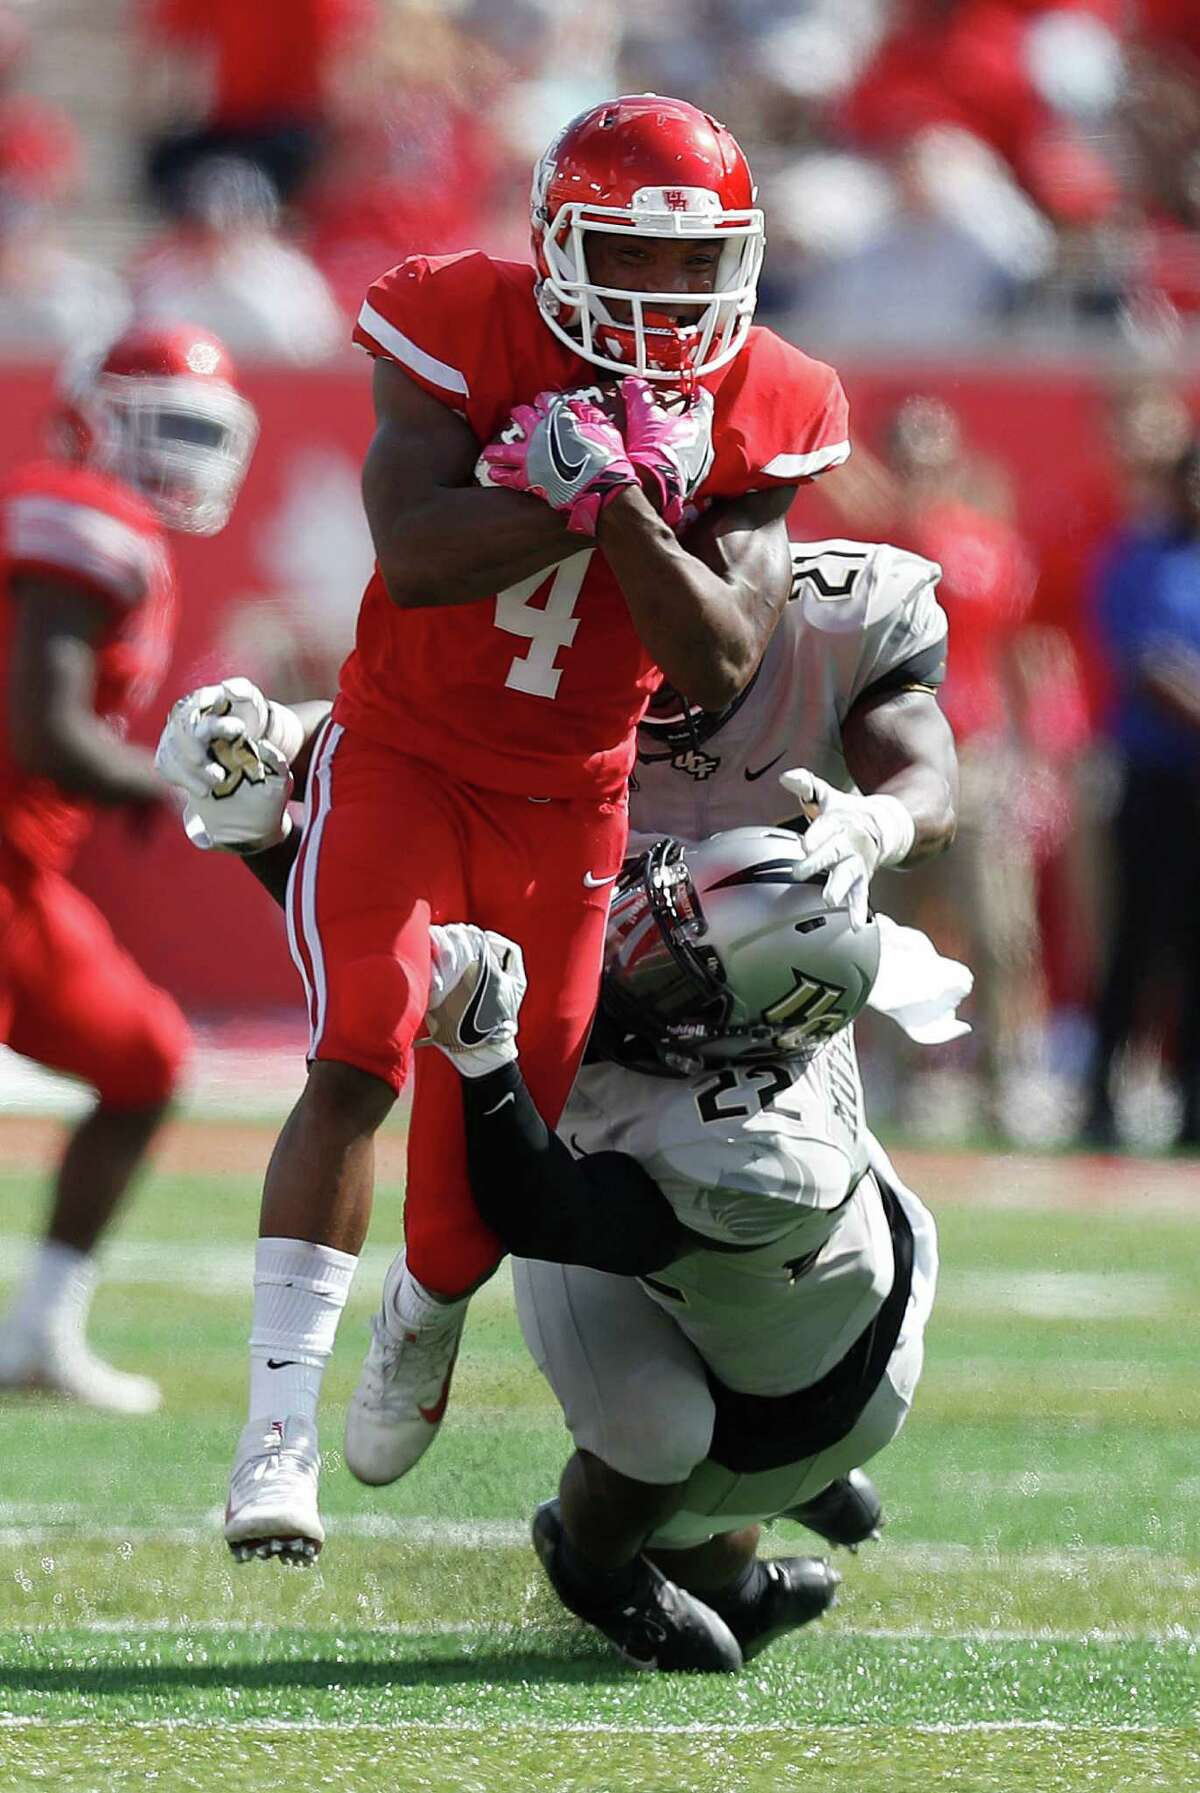 Houston Cougars D'Eriq King (4) gains yardage as UCF Knights defensive backs Drico Johnson (21) and T.J. Mutcherson (22) try to bring him down during the fourth quarter of a college football game at TDECU Stadium, Saturday,Oct. 29, 2016 in Houston.